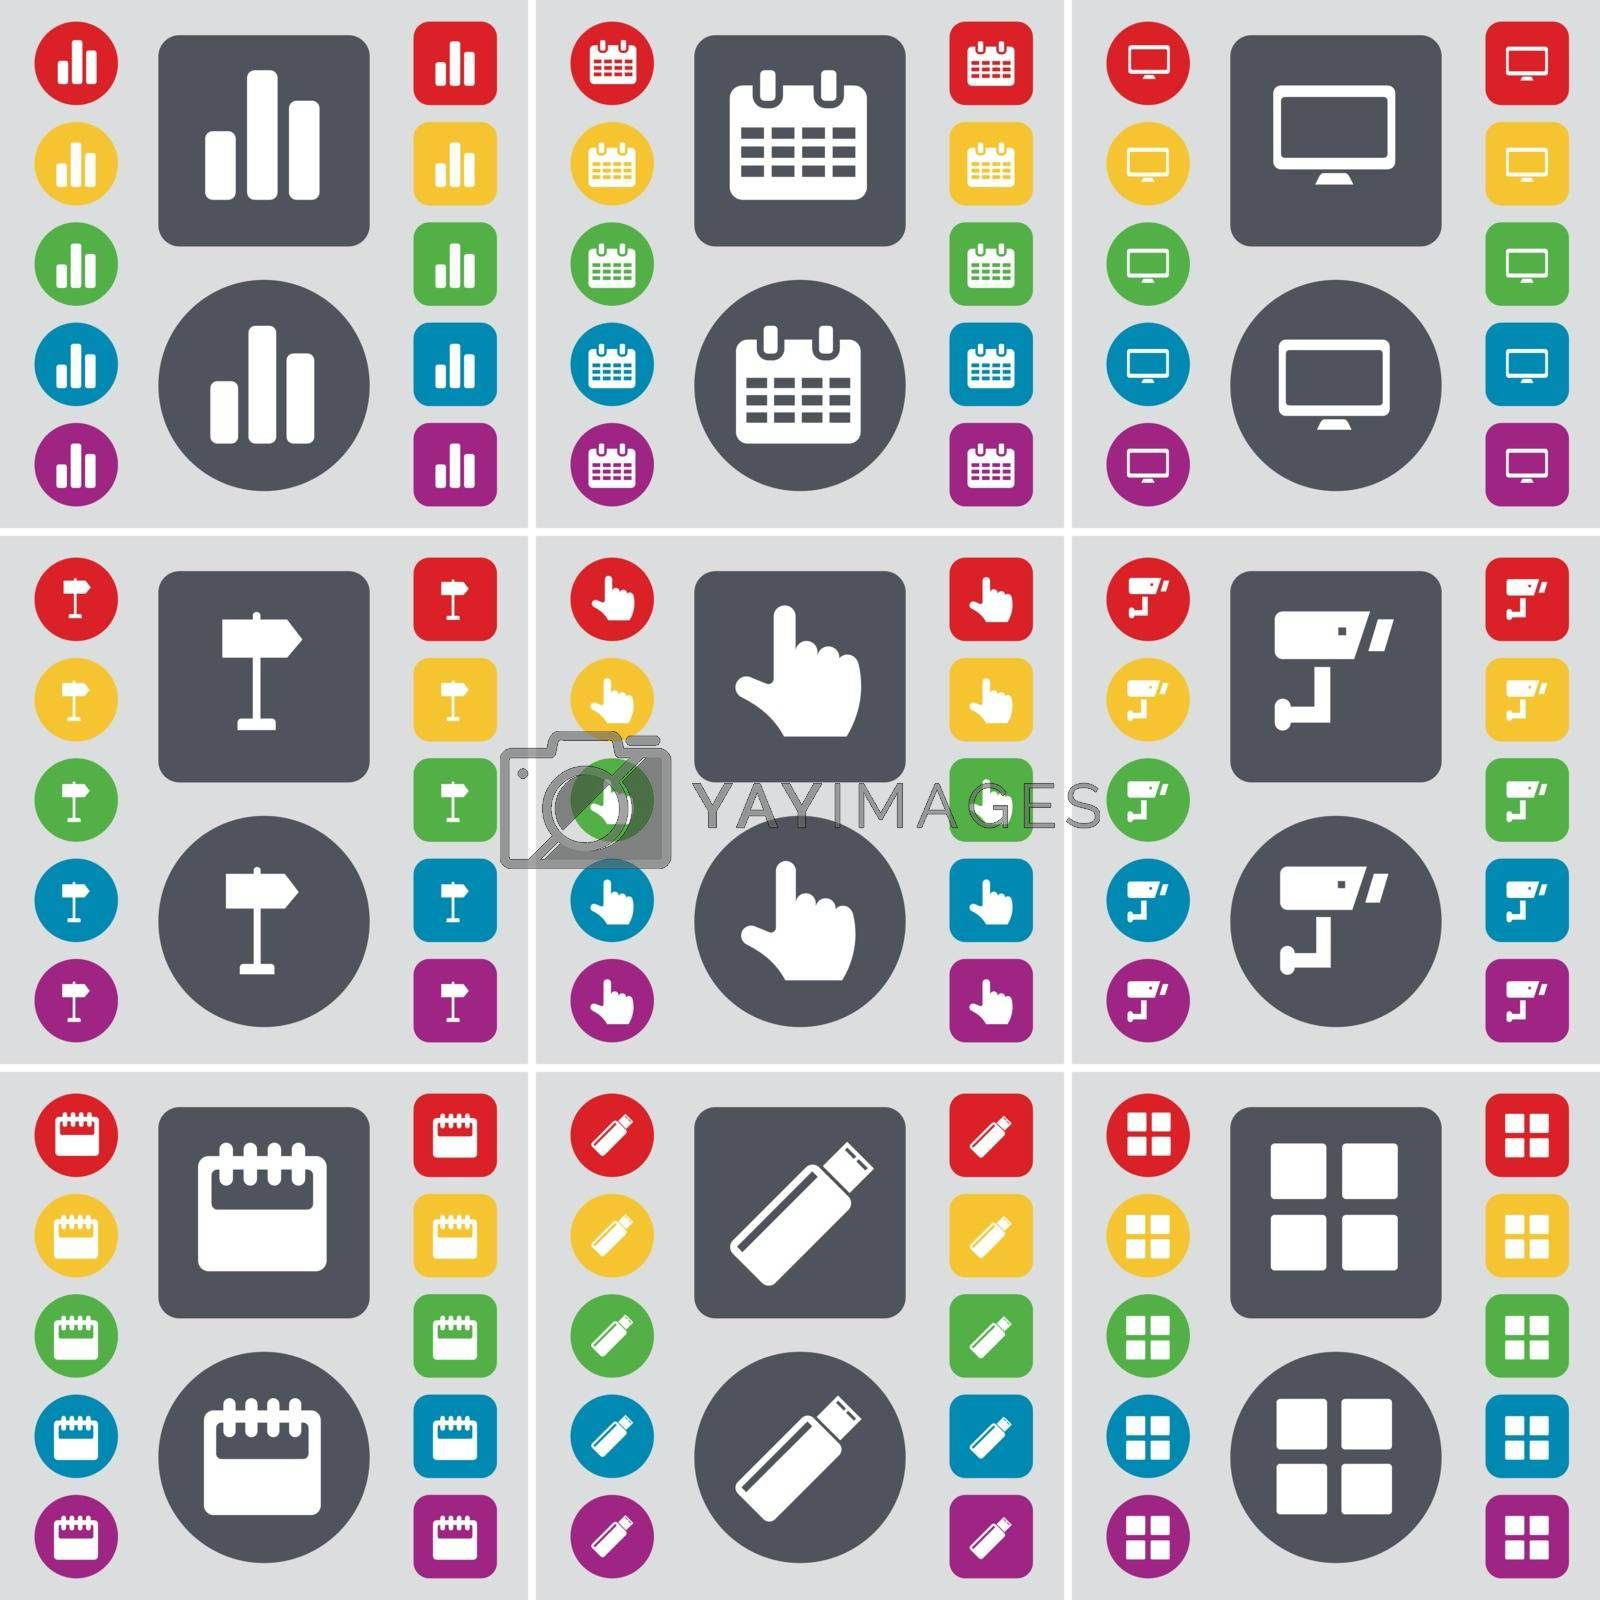 Royalty free image of Diagram, Calendar, Monitor, Signpost, Hand, CCTV, Calendar, USB, Apps icon symbol. A large set of flat, colored buttons for your design. Vector by serhii_lohvyniuk